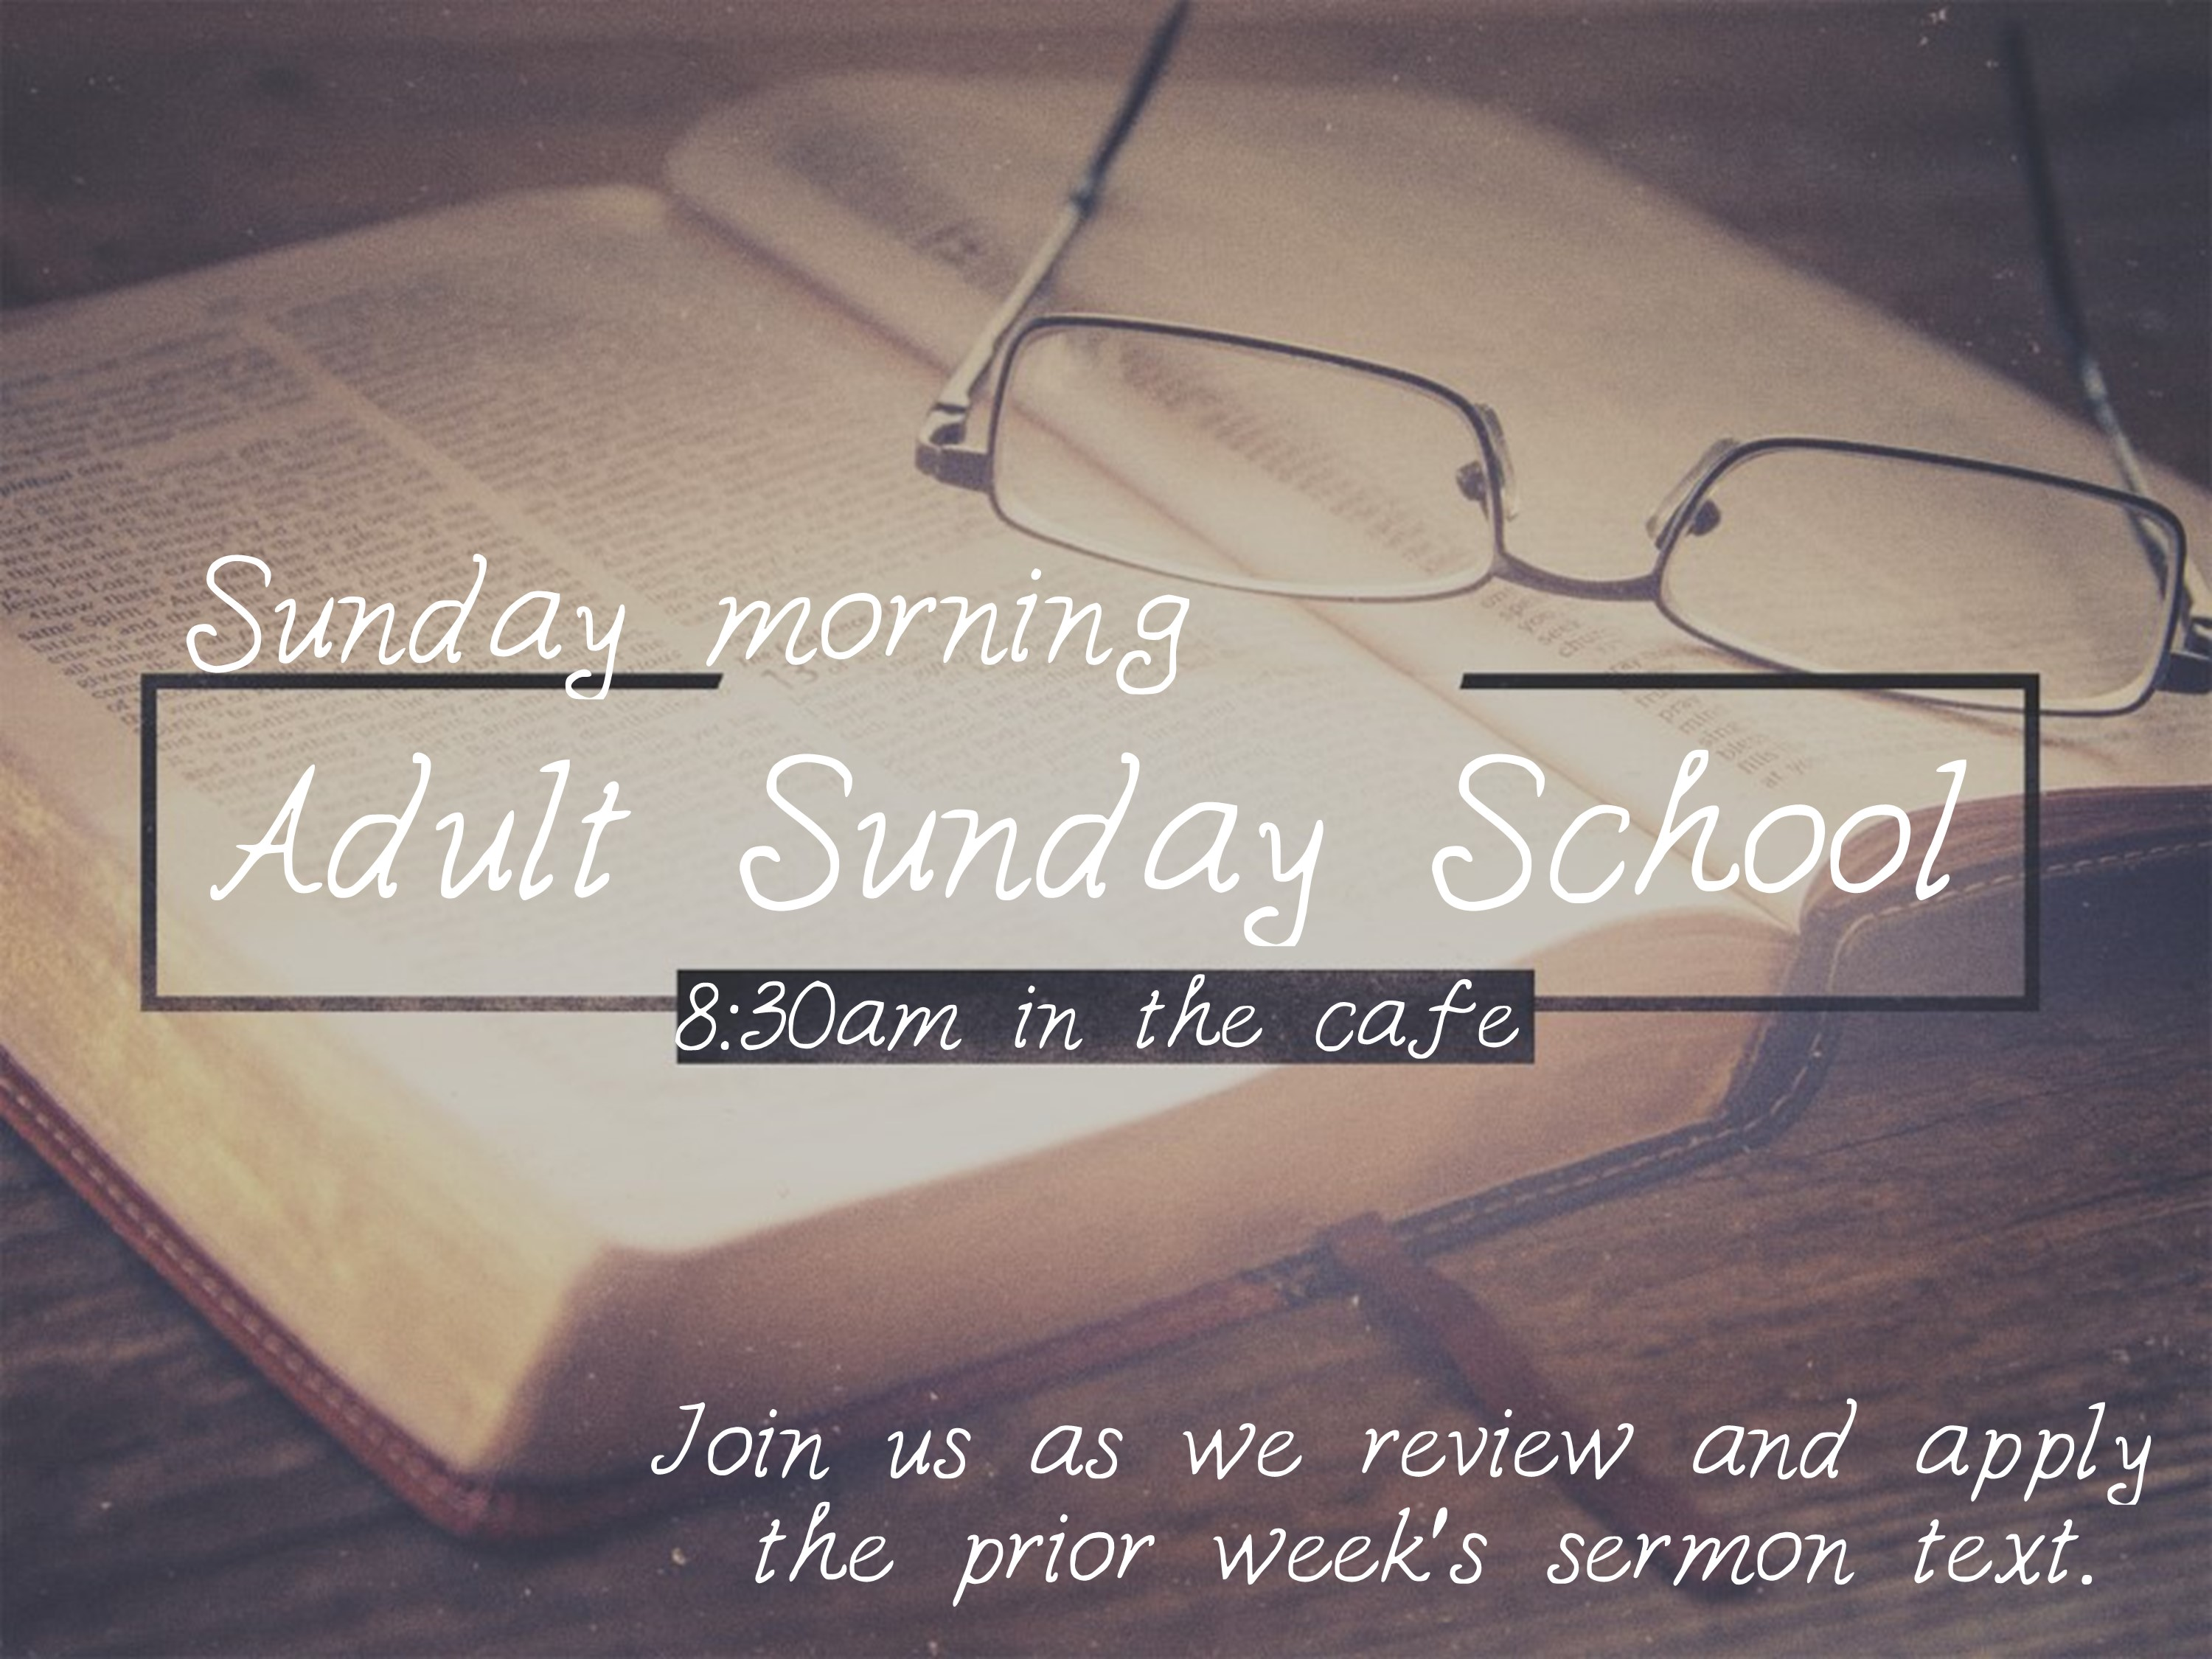 Adult Sunday school image